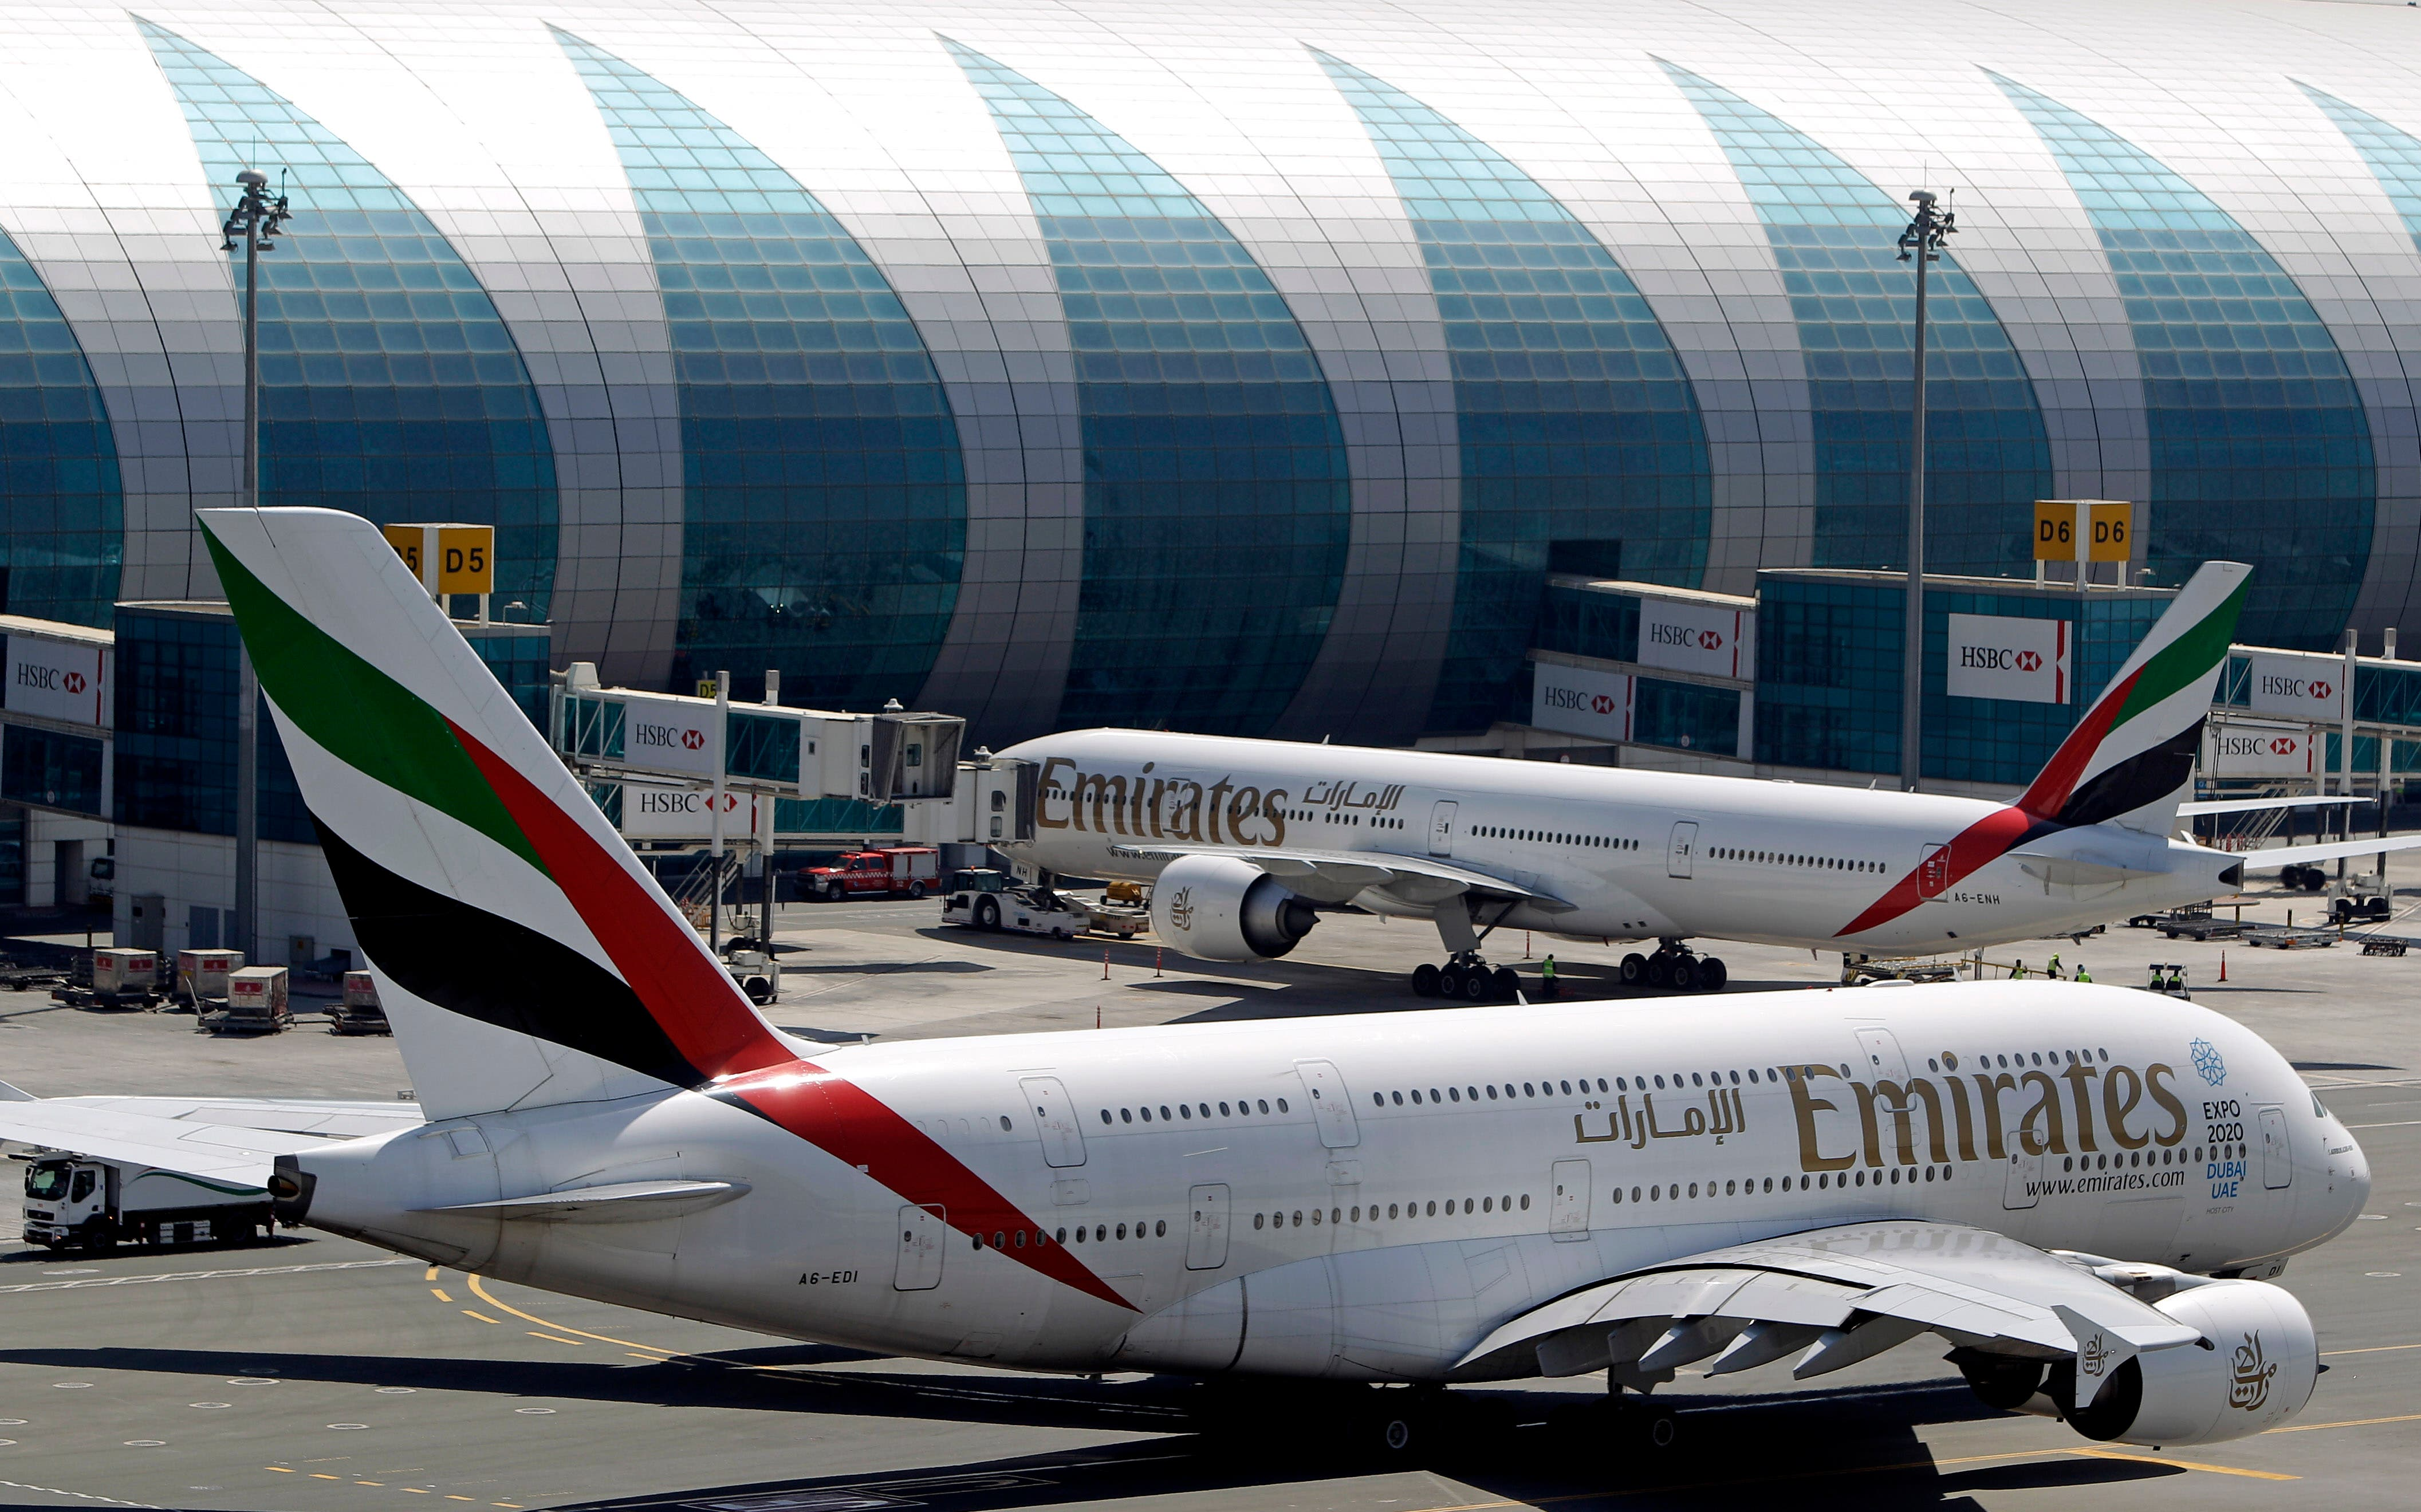 Emirates passenger planes are parked at their gates at Dubai airport in United Arab Emirates, Thursday, May 8, 2014. (File: AP)